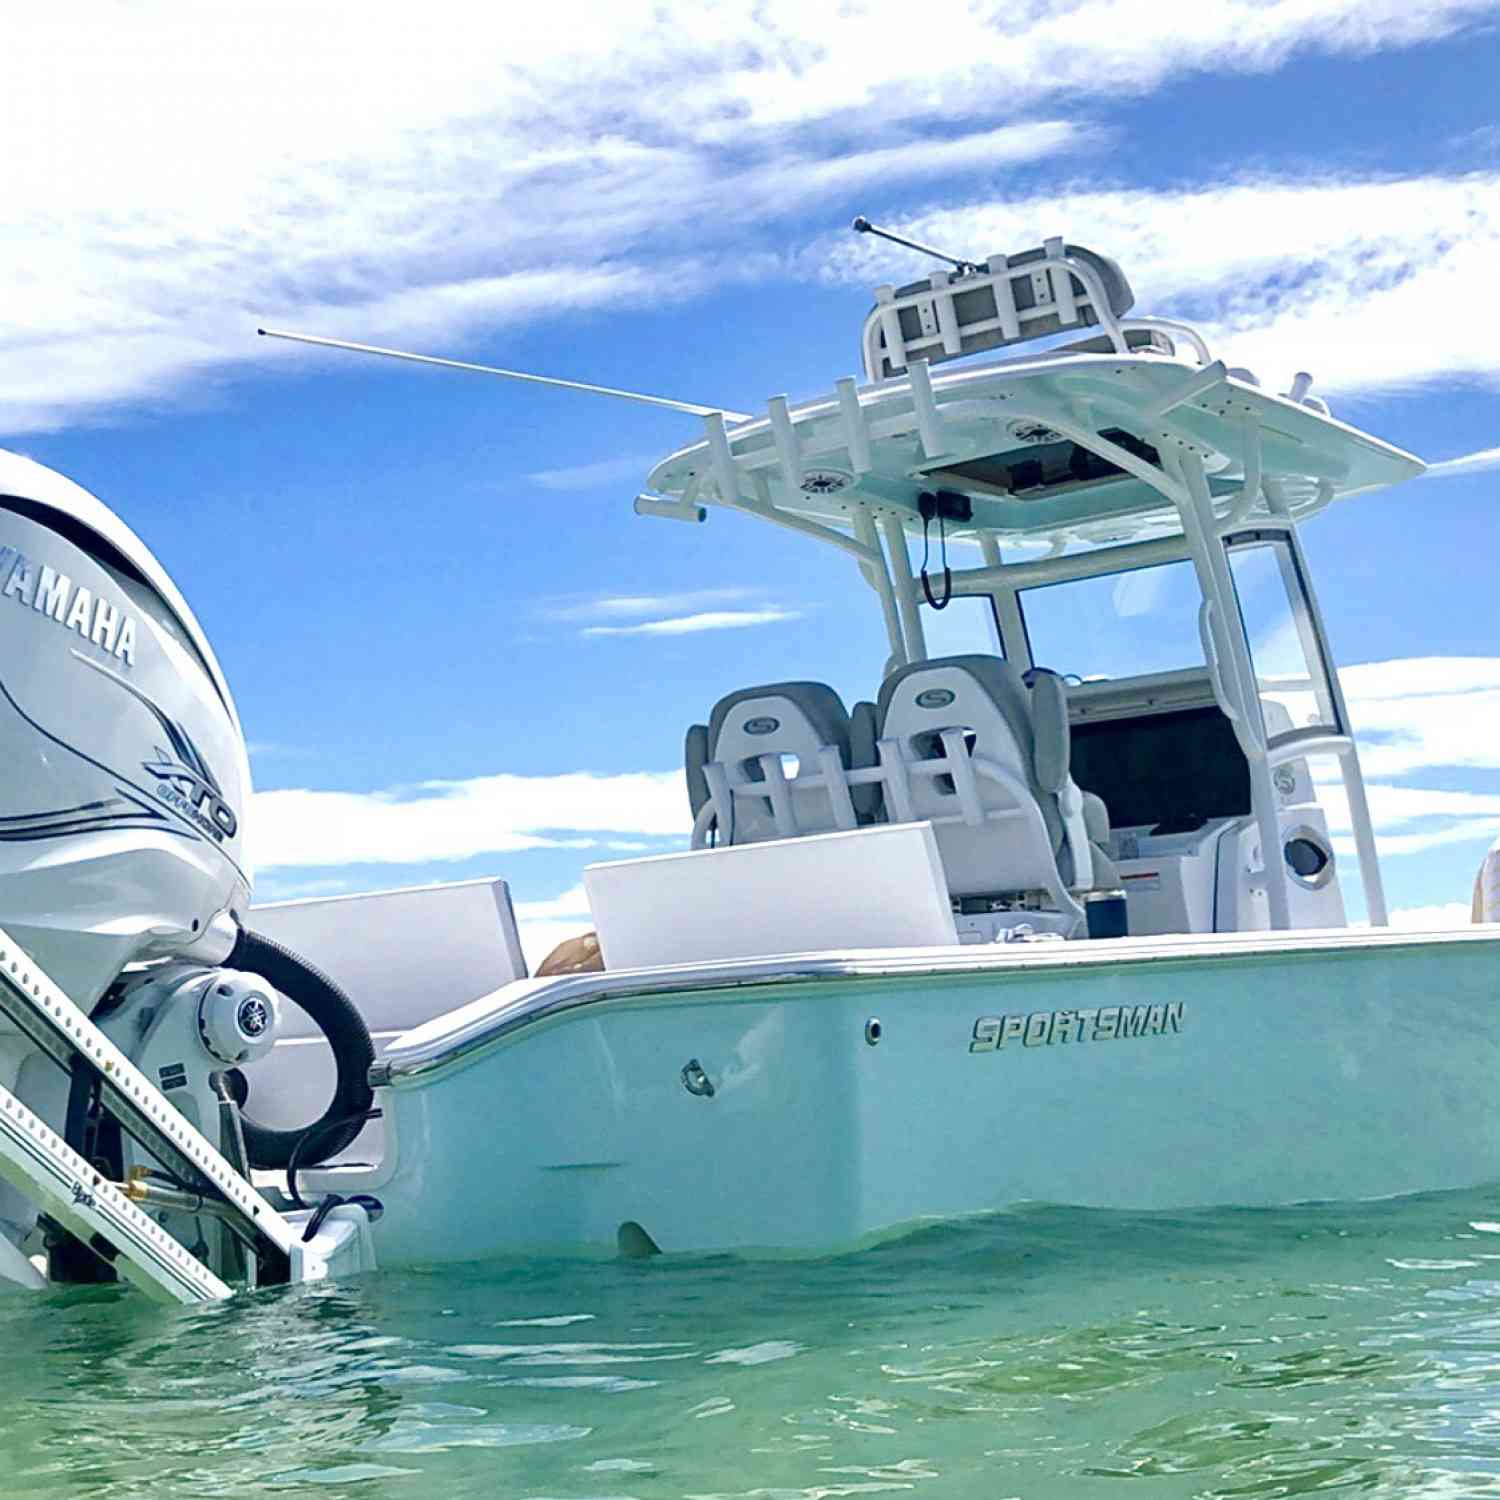 Title: Sandbar season - On board their Sportsman Masters 267 Bay Boat - Location: Sarasota, Fl. Participating in the Photo Contest #SportsmanMay2020